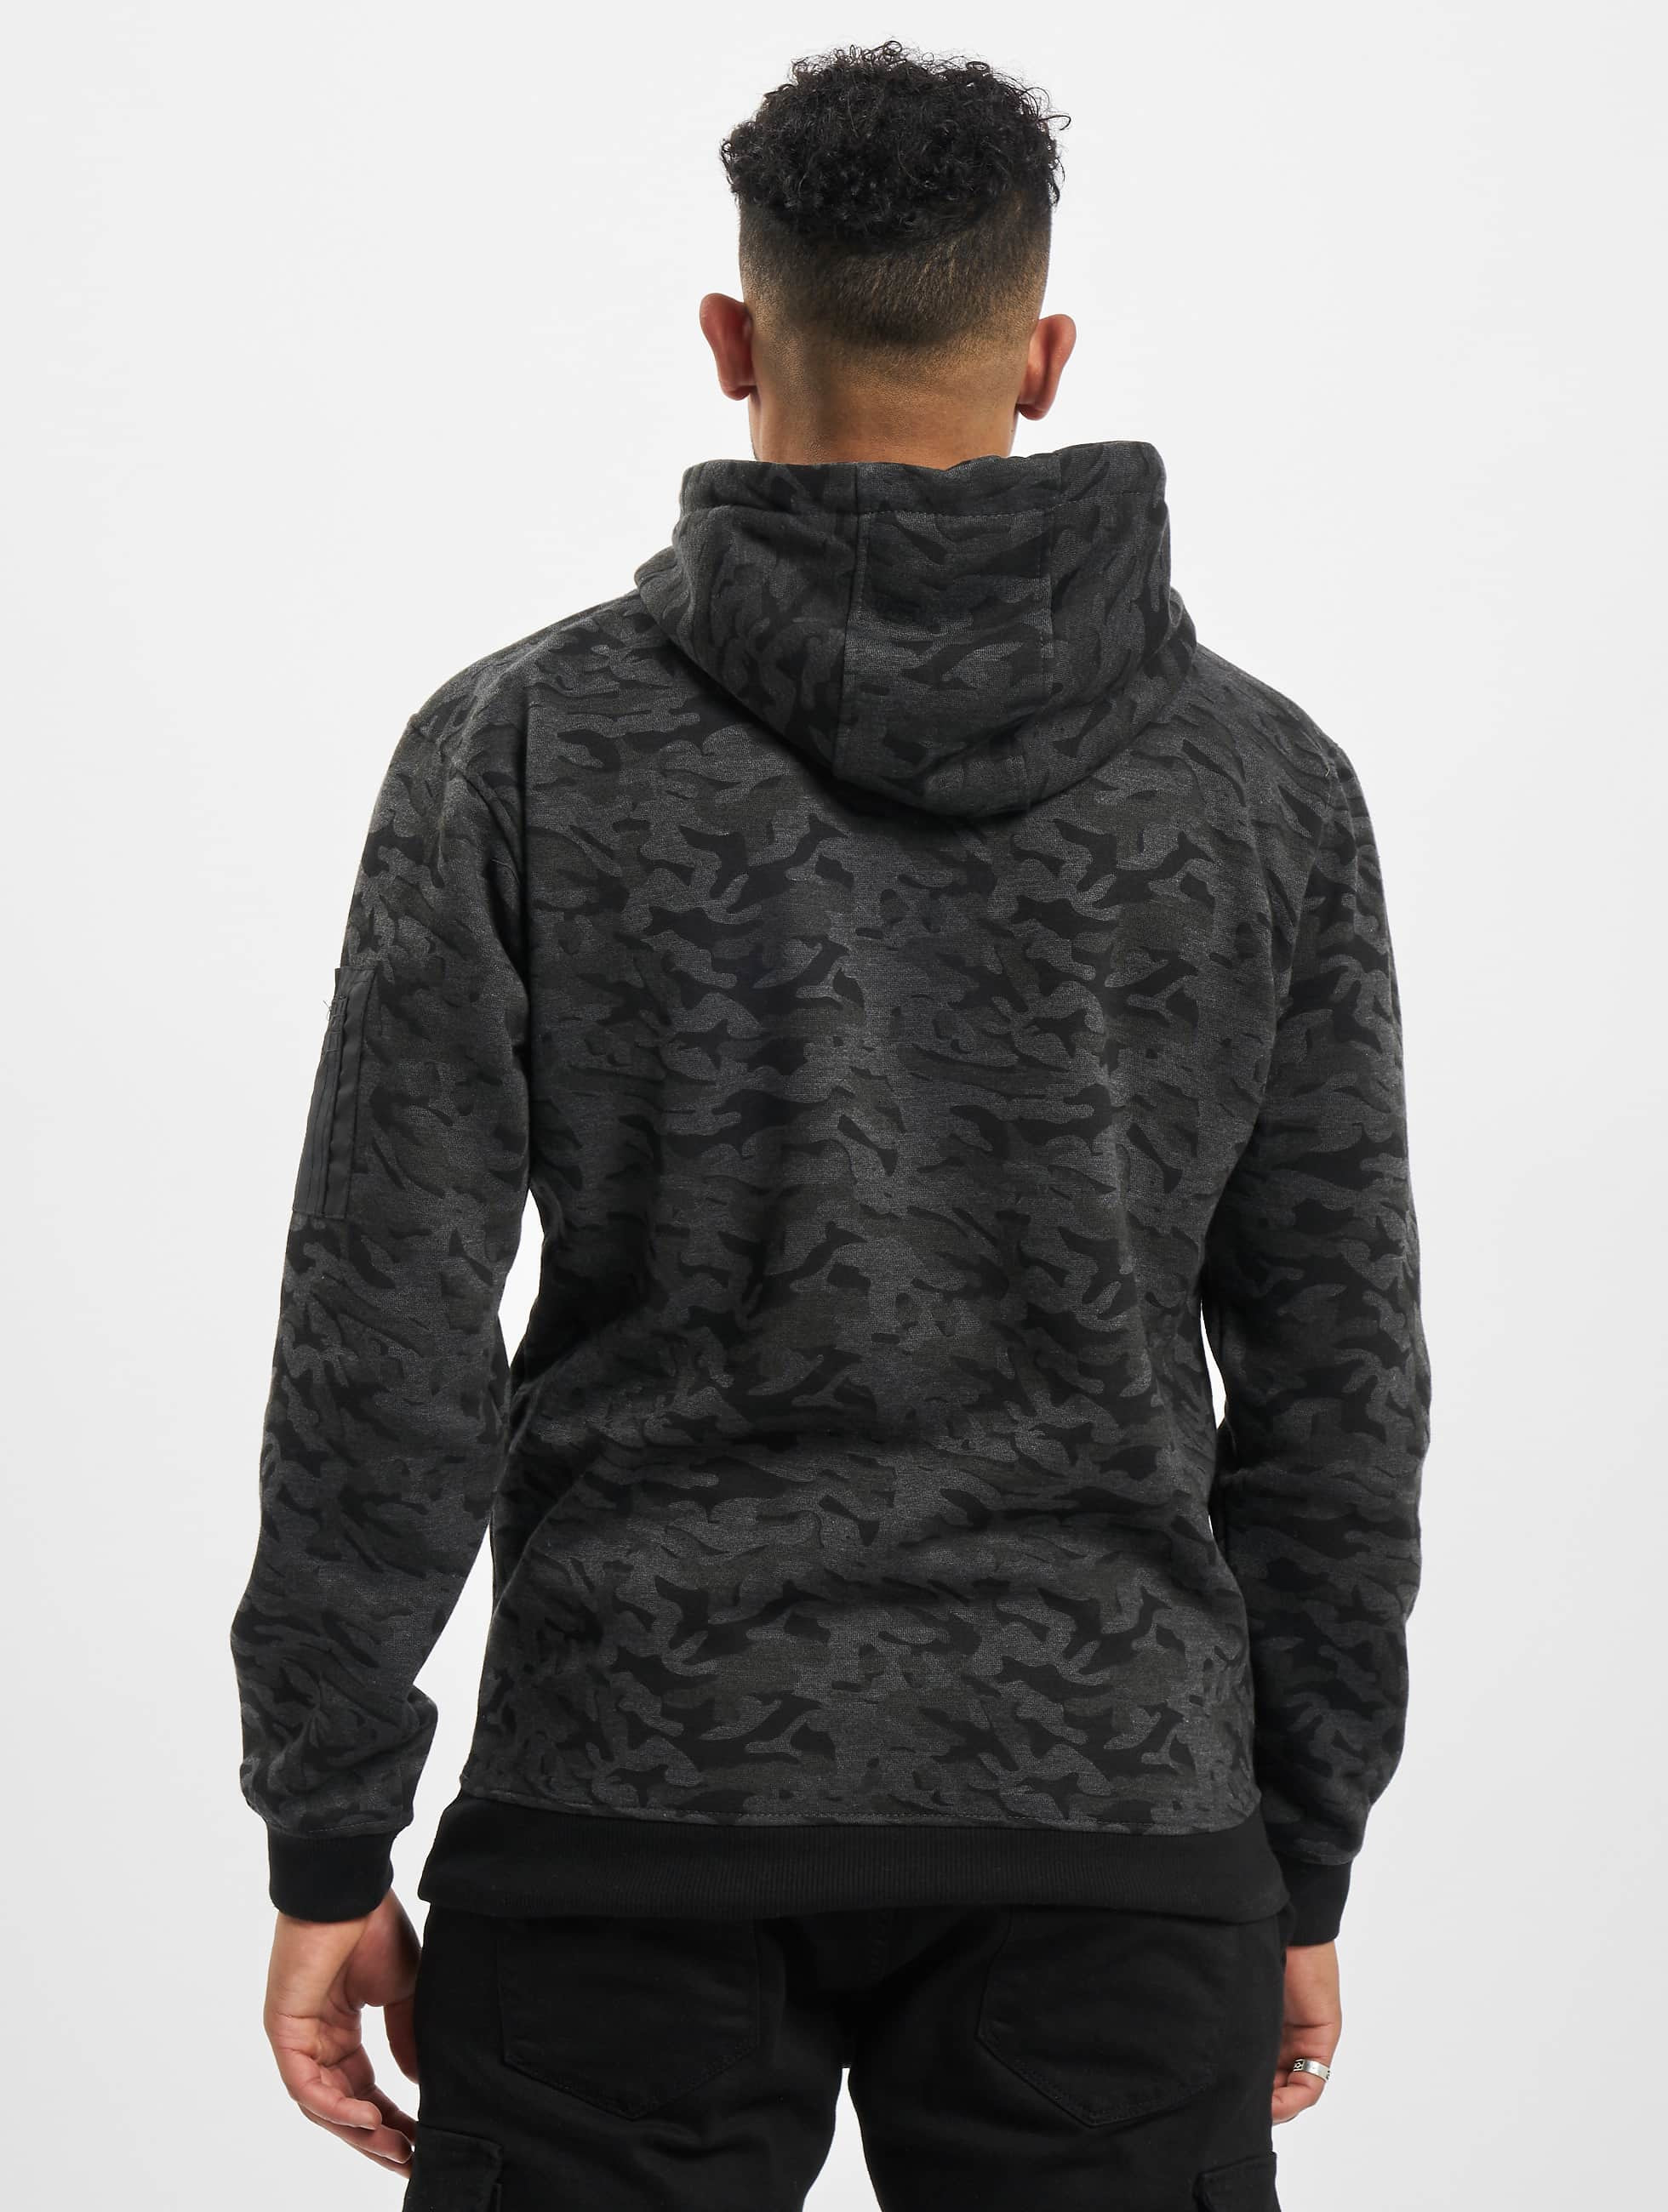 Urban Classics Толстовка Sweat Camo Bomber камуфляж